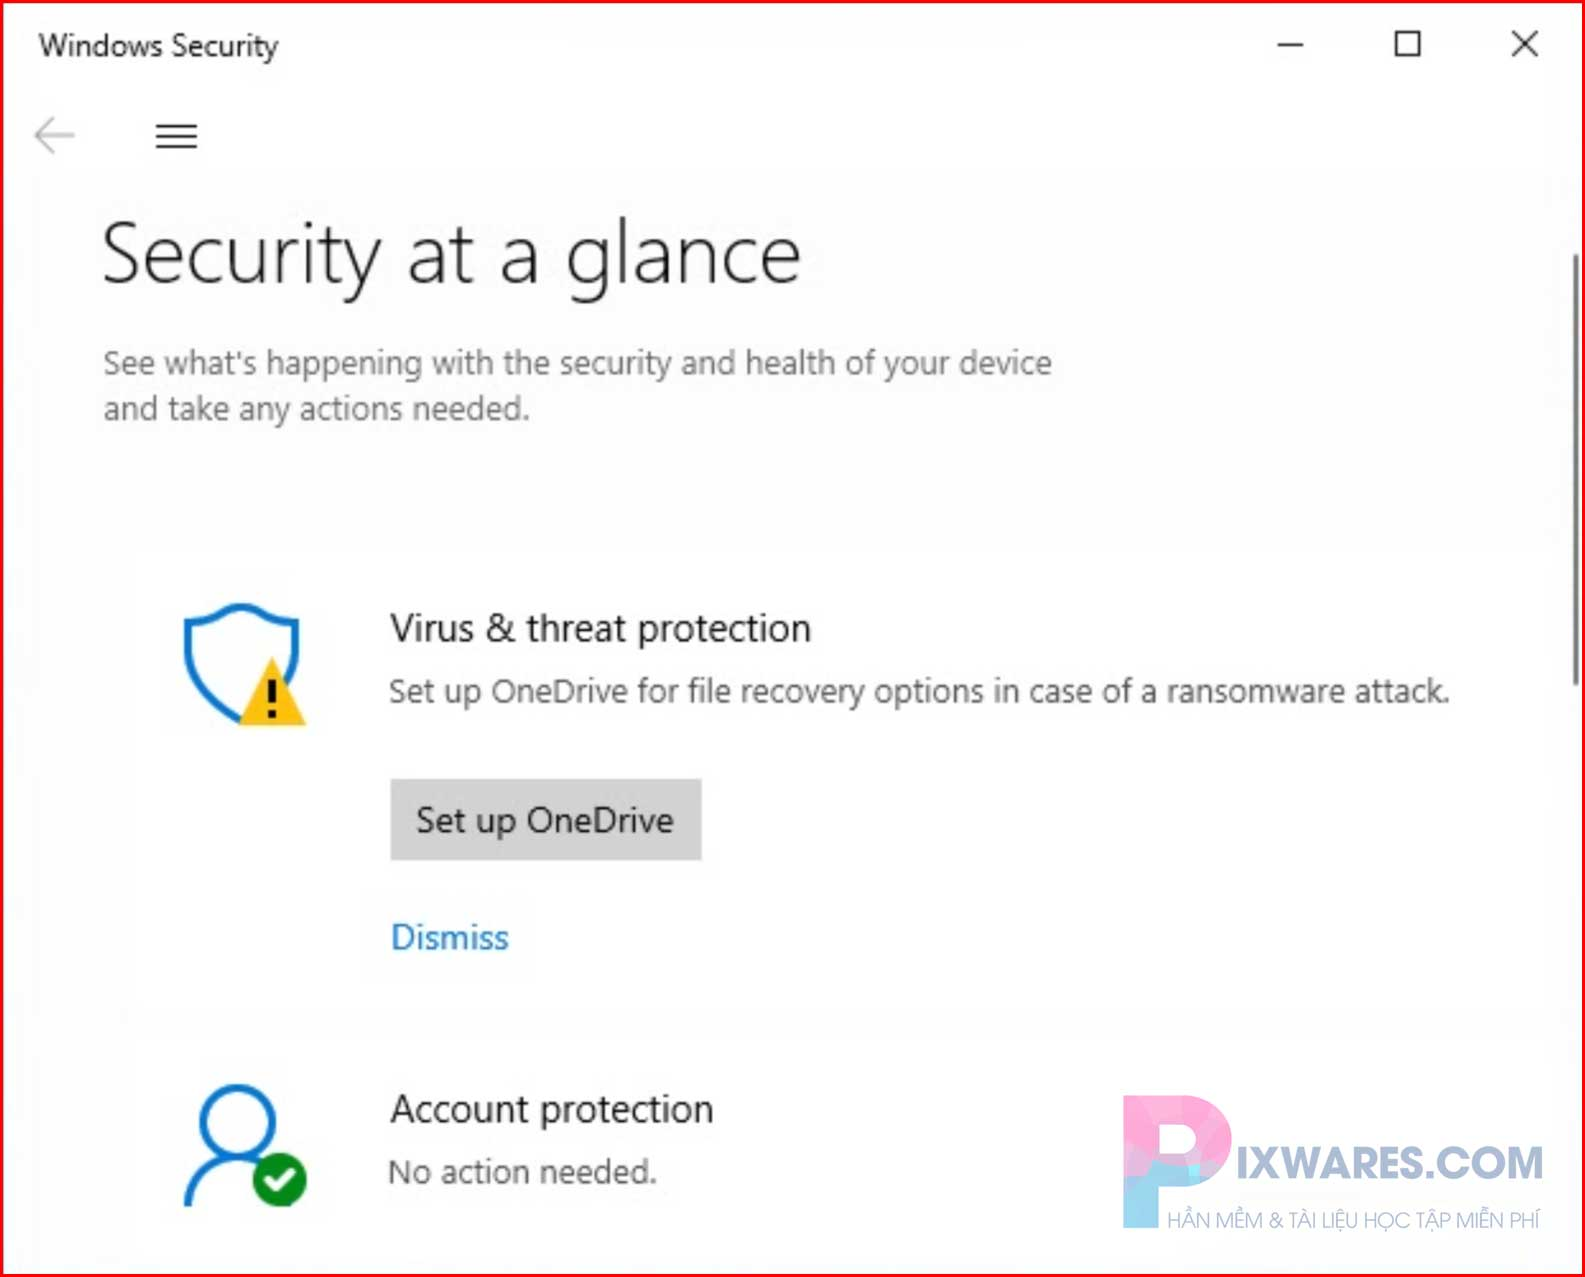 chon-virus-threat-protection